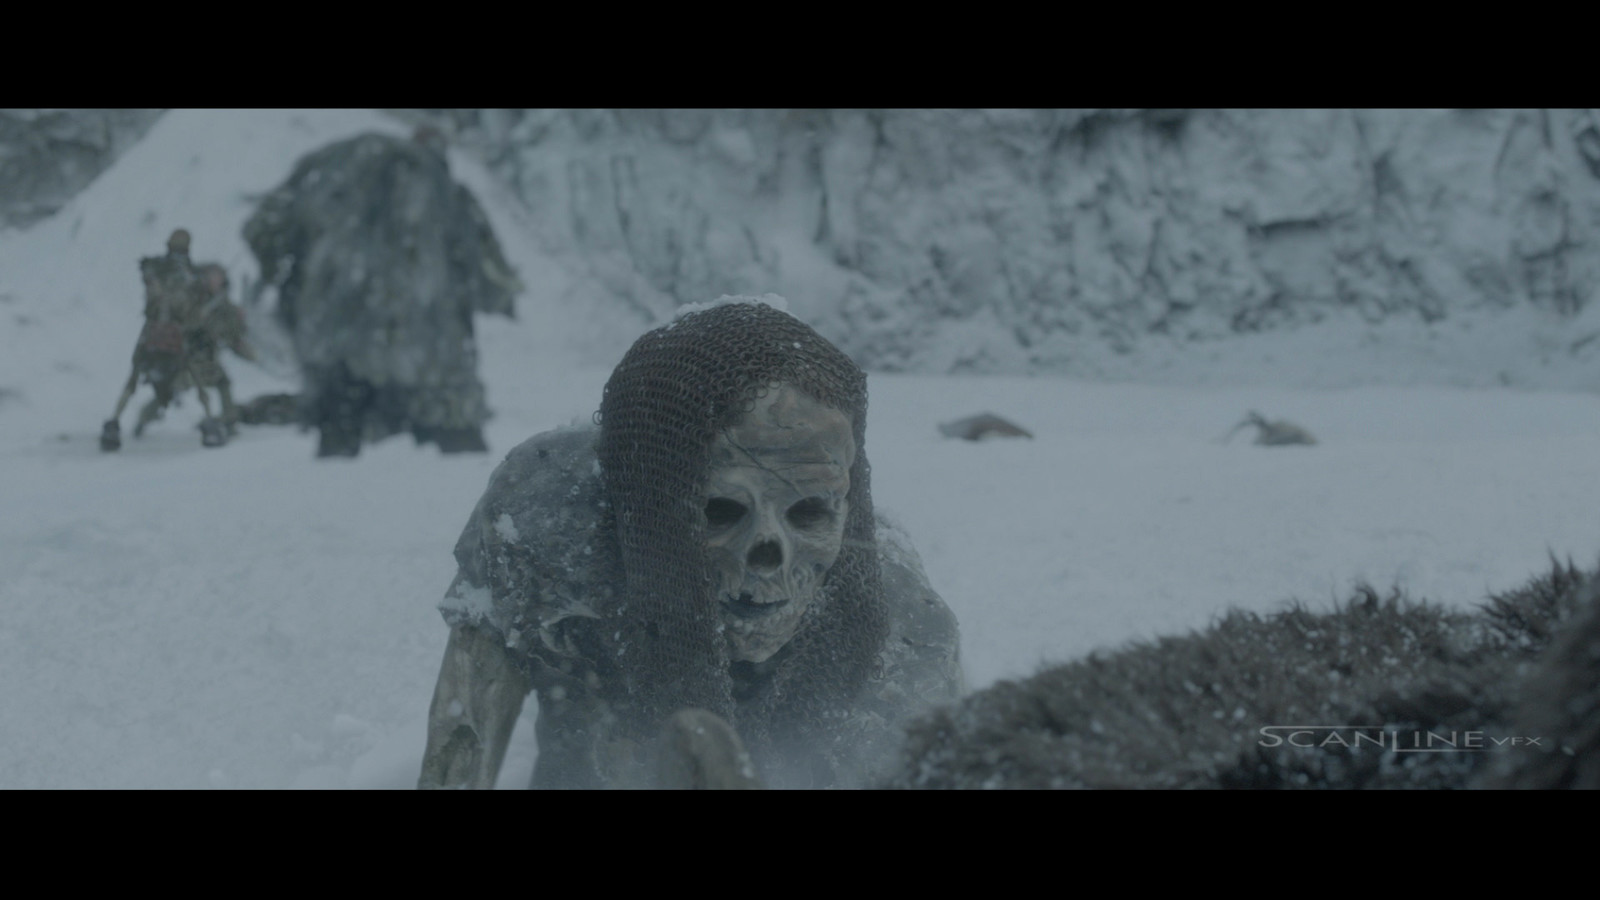 Compositing and integration work for Game of Thrones Season 5. Work done at Scanline VFX with a team of 3D artists. Software used: Nuke.